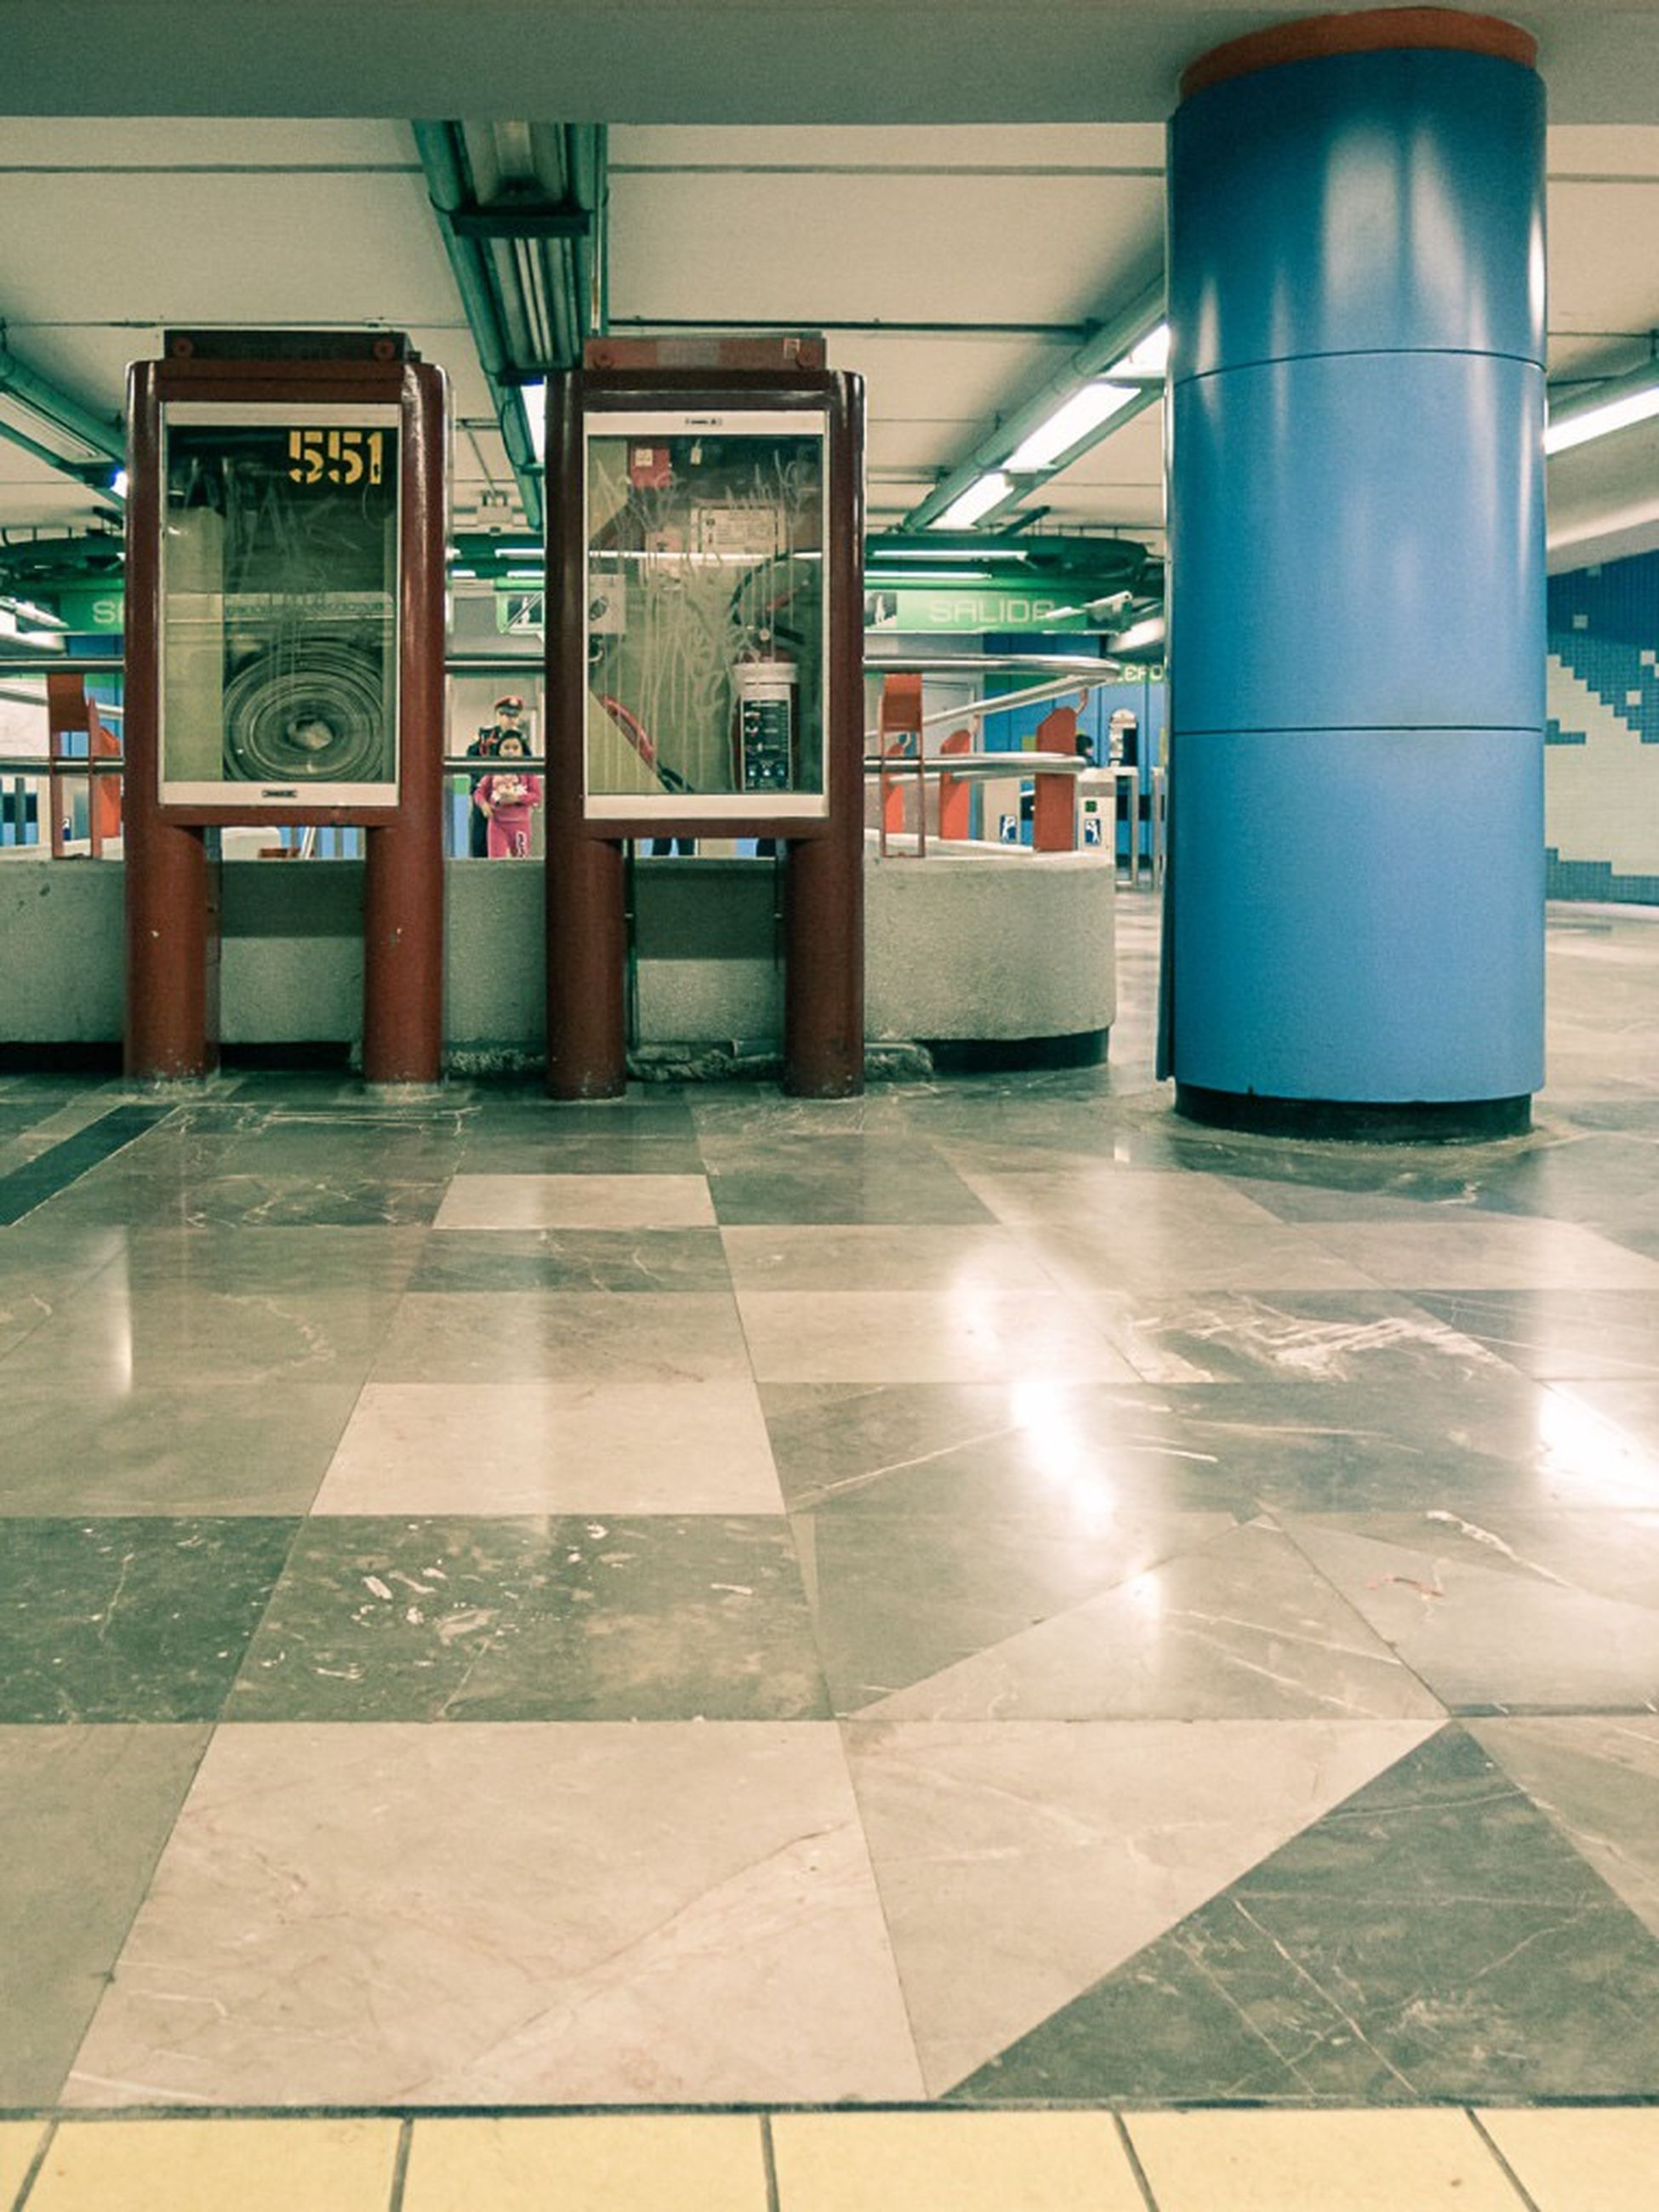 indoors, tiled floor, architecture, built structure, flooring, empty, illuminated, railroad station, architectural column, tile, absence, reflection, incidental people, public transportation, transportation, interior, railroad station platform, ceiling, column, door